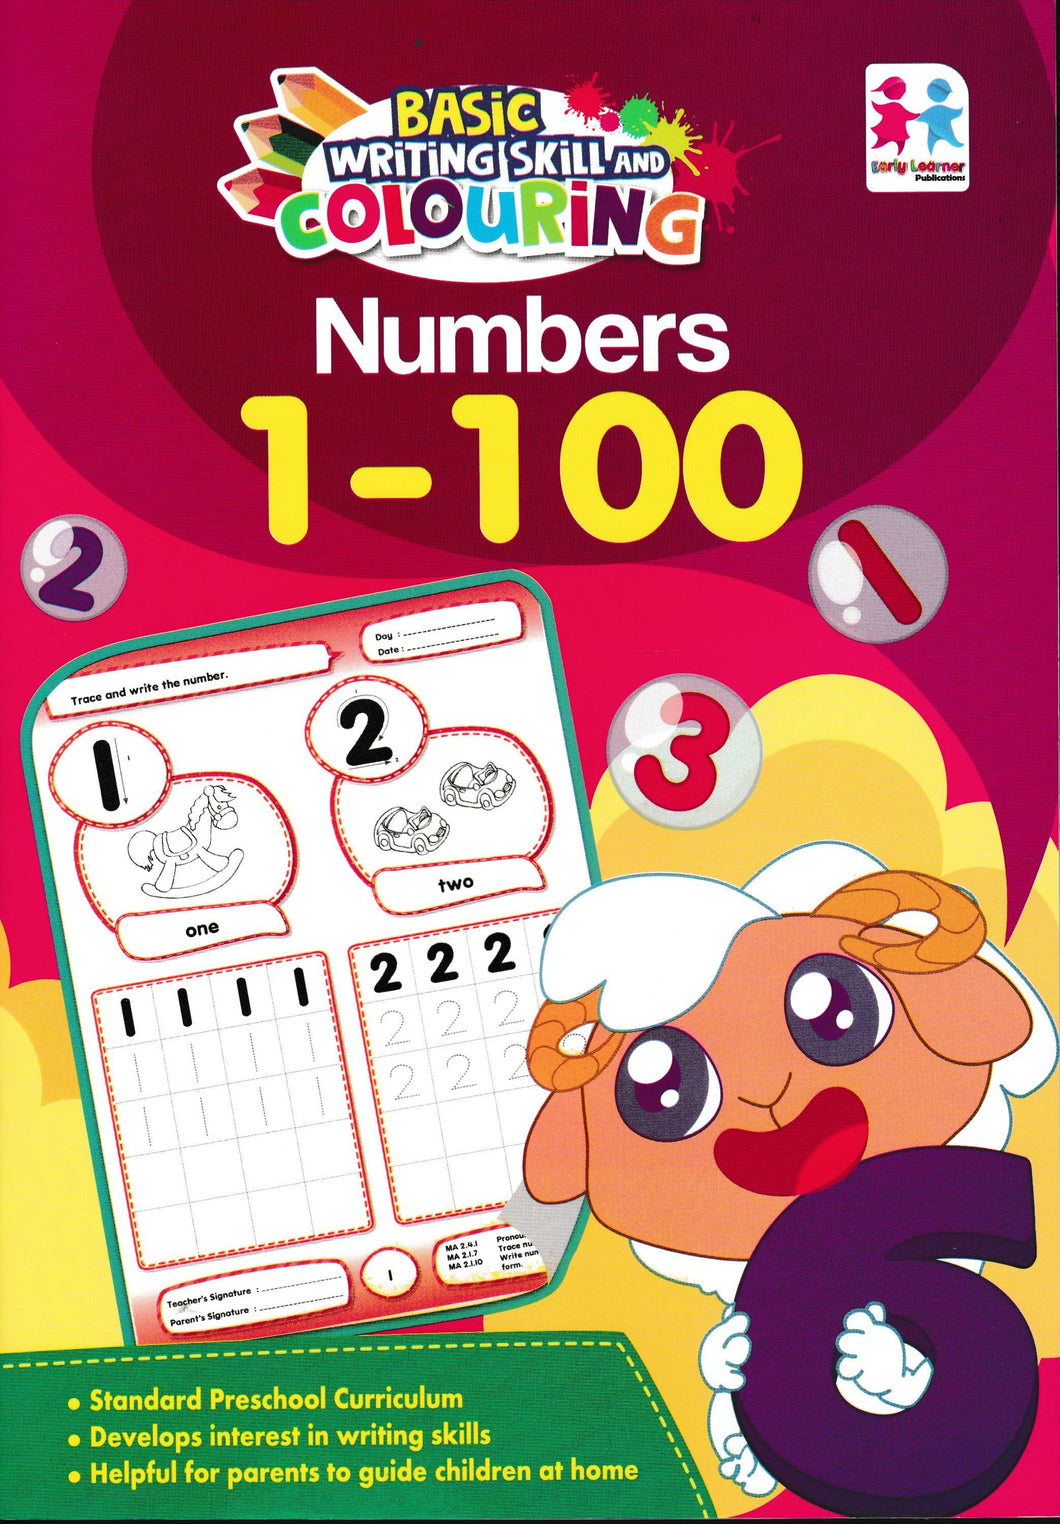 EarlyLearner: Basic Writing Skill And Colouring: Numbers 1 - 100